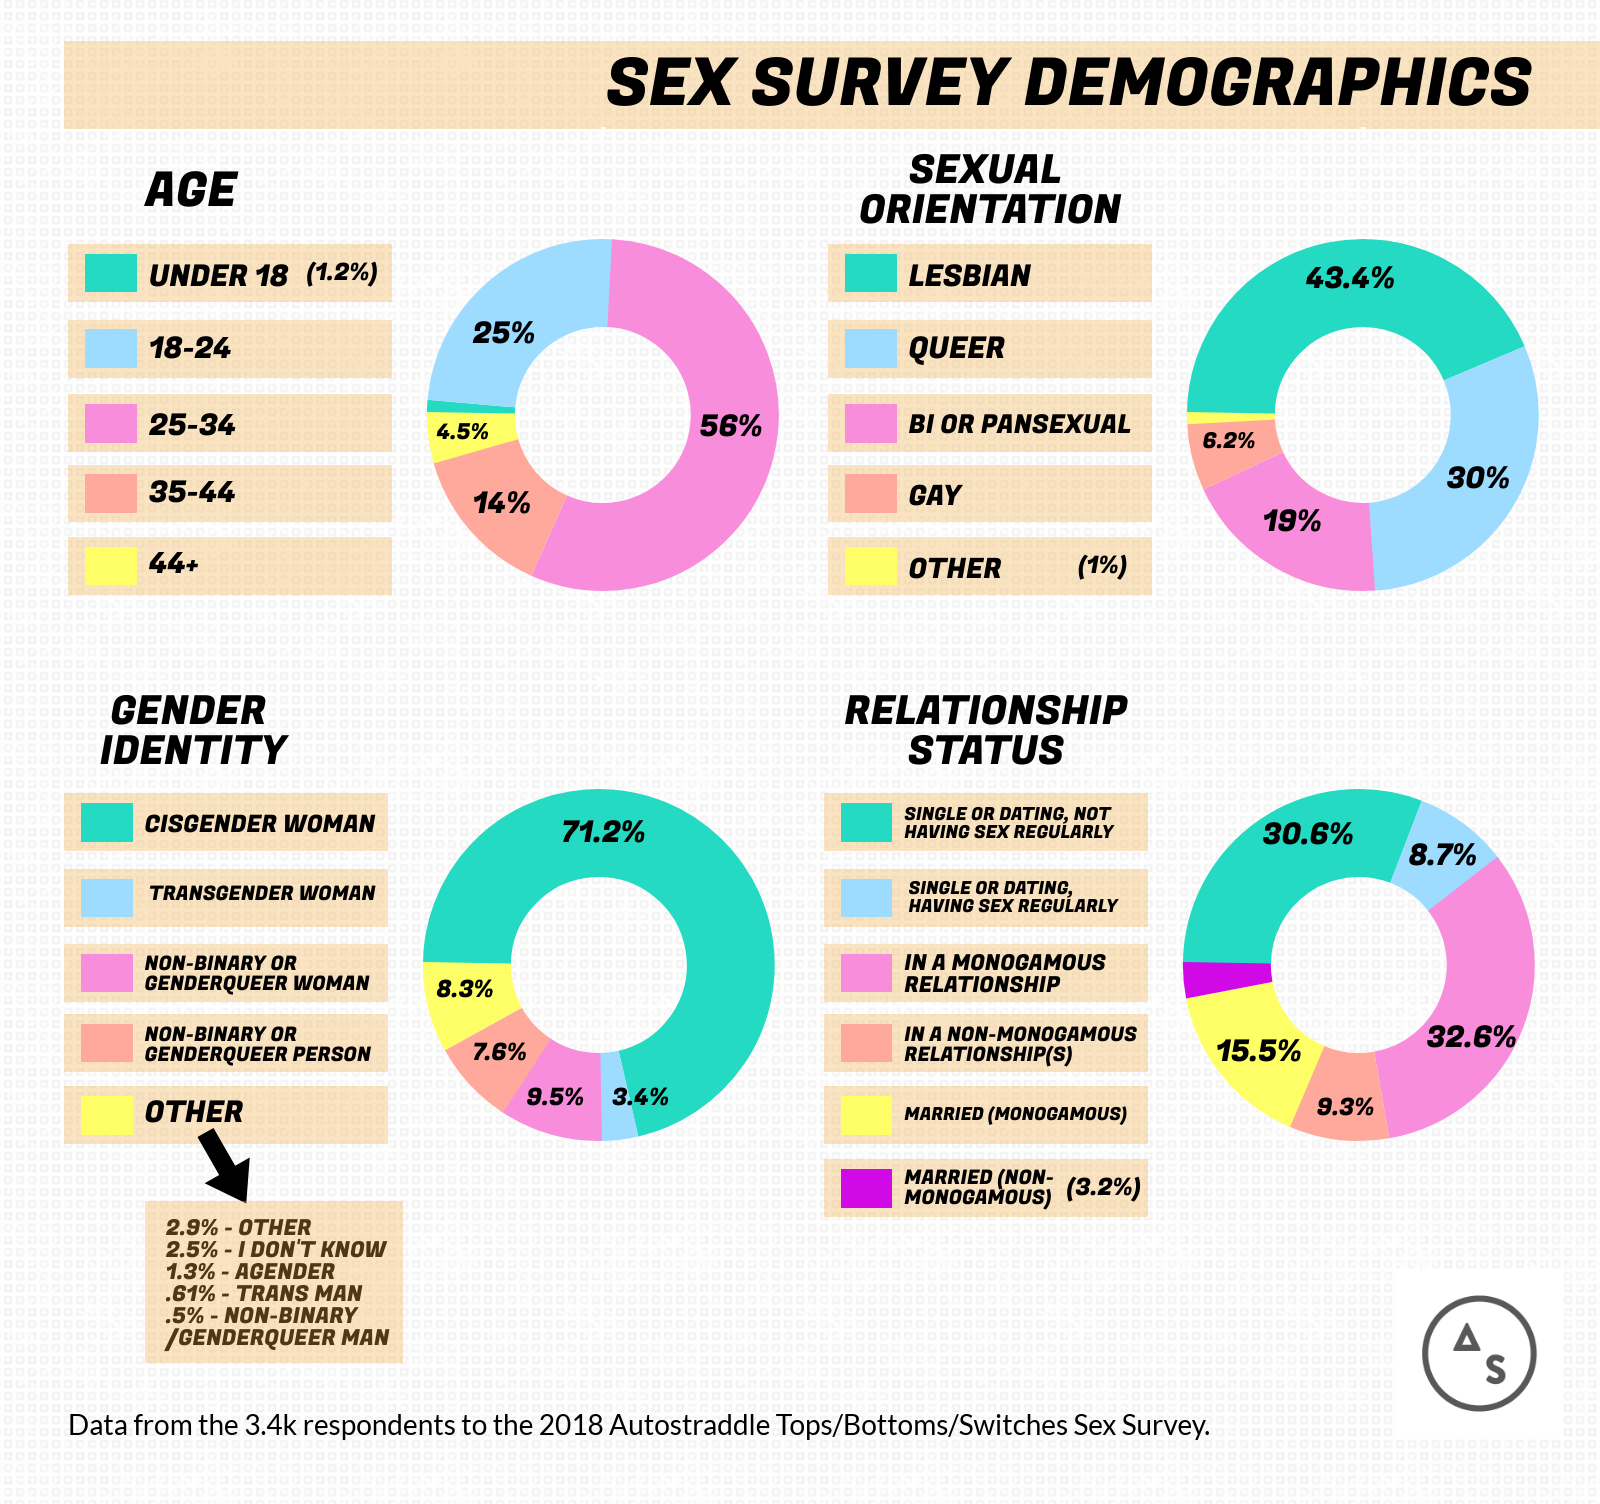 Sex Survey Demographics = Age: Under 18 (1.2%) 18-24 (25%), 25-34 (56%), 35-44 (14%), 44+ (4.5%) // Sexual Orientation: Lesbian (43.4%), Queer (30%), Bi or Pansexual (19%), Gay (6.2%), Other (1%) // Gender Identity: Cisgender Woman (71.2%), Transgender Woman (3.4%), Non-Binary or Genderqueer Person (7.8%), Other (8.3%) // Relationship Status: Single or Dating, Not Having Sex Regularly (30.6%), Single or Dating, Having Sex Regularly (8.7%), In a Monogamous Relationship (32.6%), In a Non-Monogamous Relationship(s) (9.3%), Married & Monogamous (15.5%), Married & Non-Monogamous (3.2%)